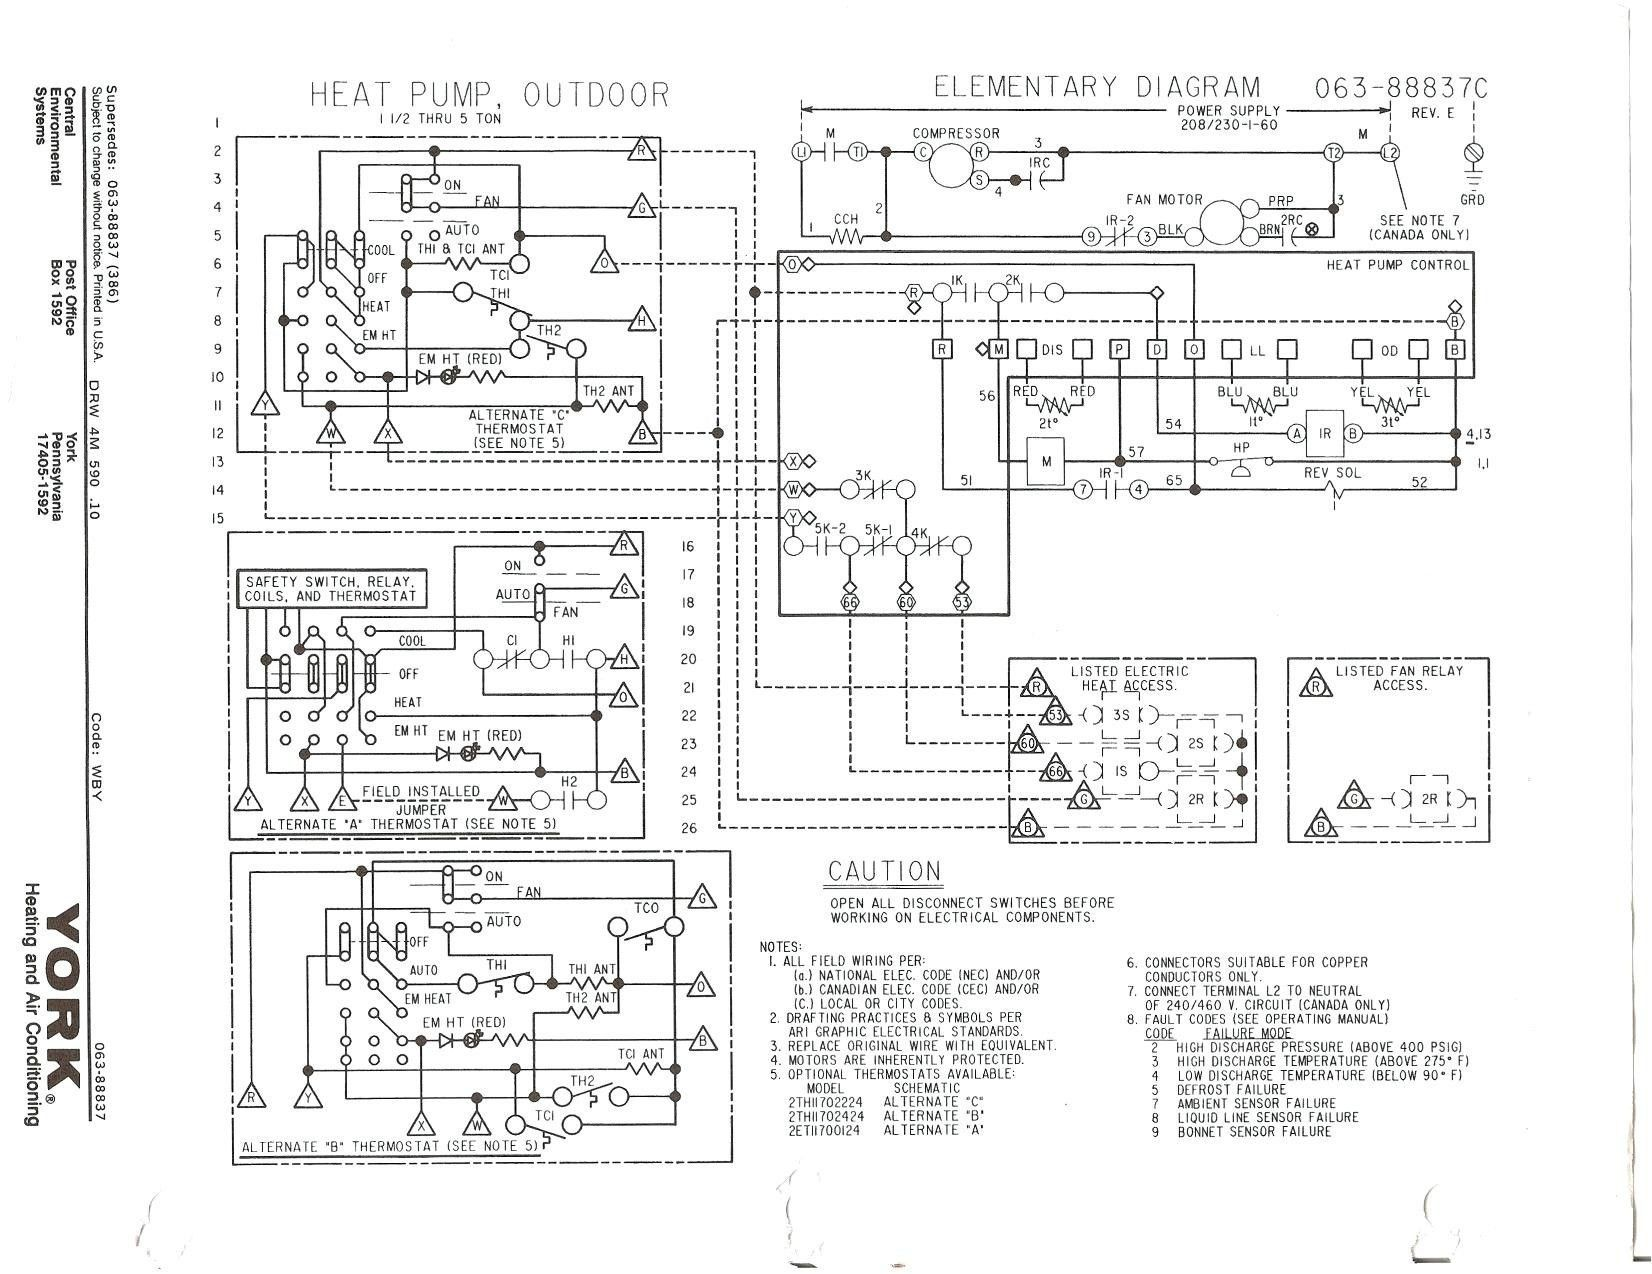 New Trane Electric Furnace Wiring Diagram Pallet Shed Attic Organization Thermostat Wiring